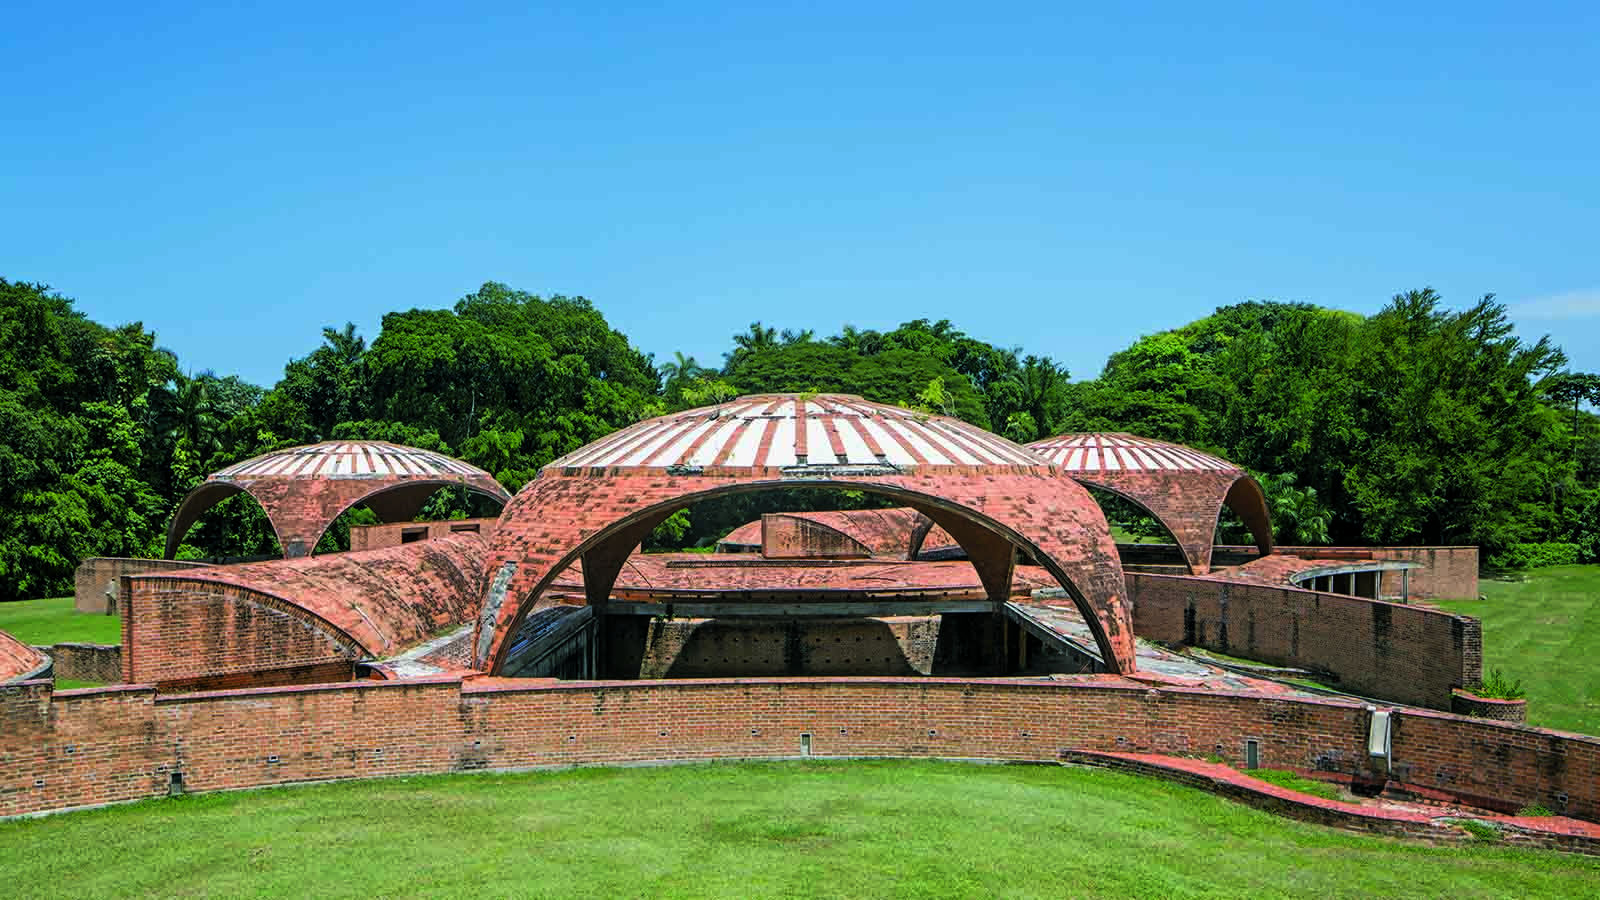 A group of brick structures formed of domes and arches with large open air spaces, surrounded by grass and trees.